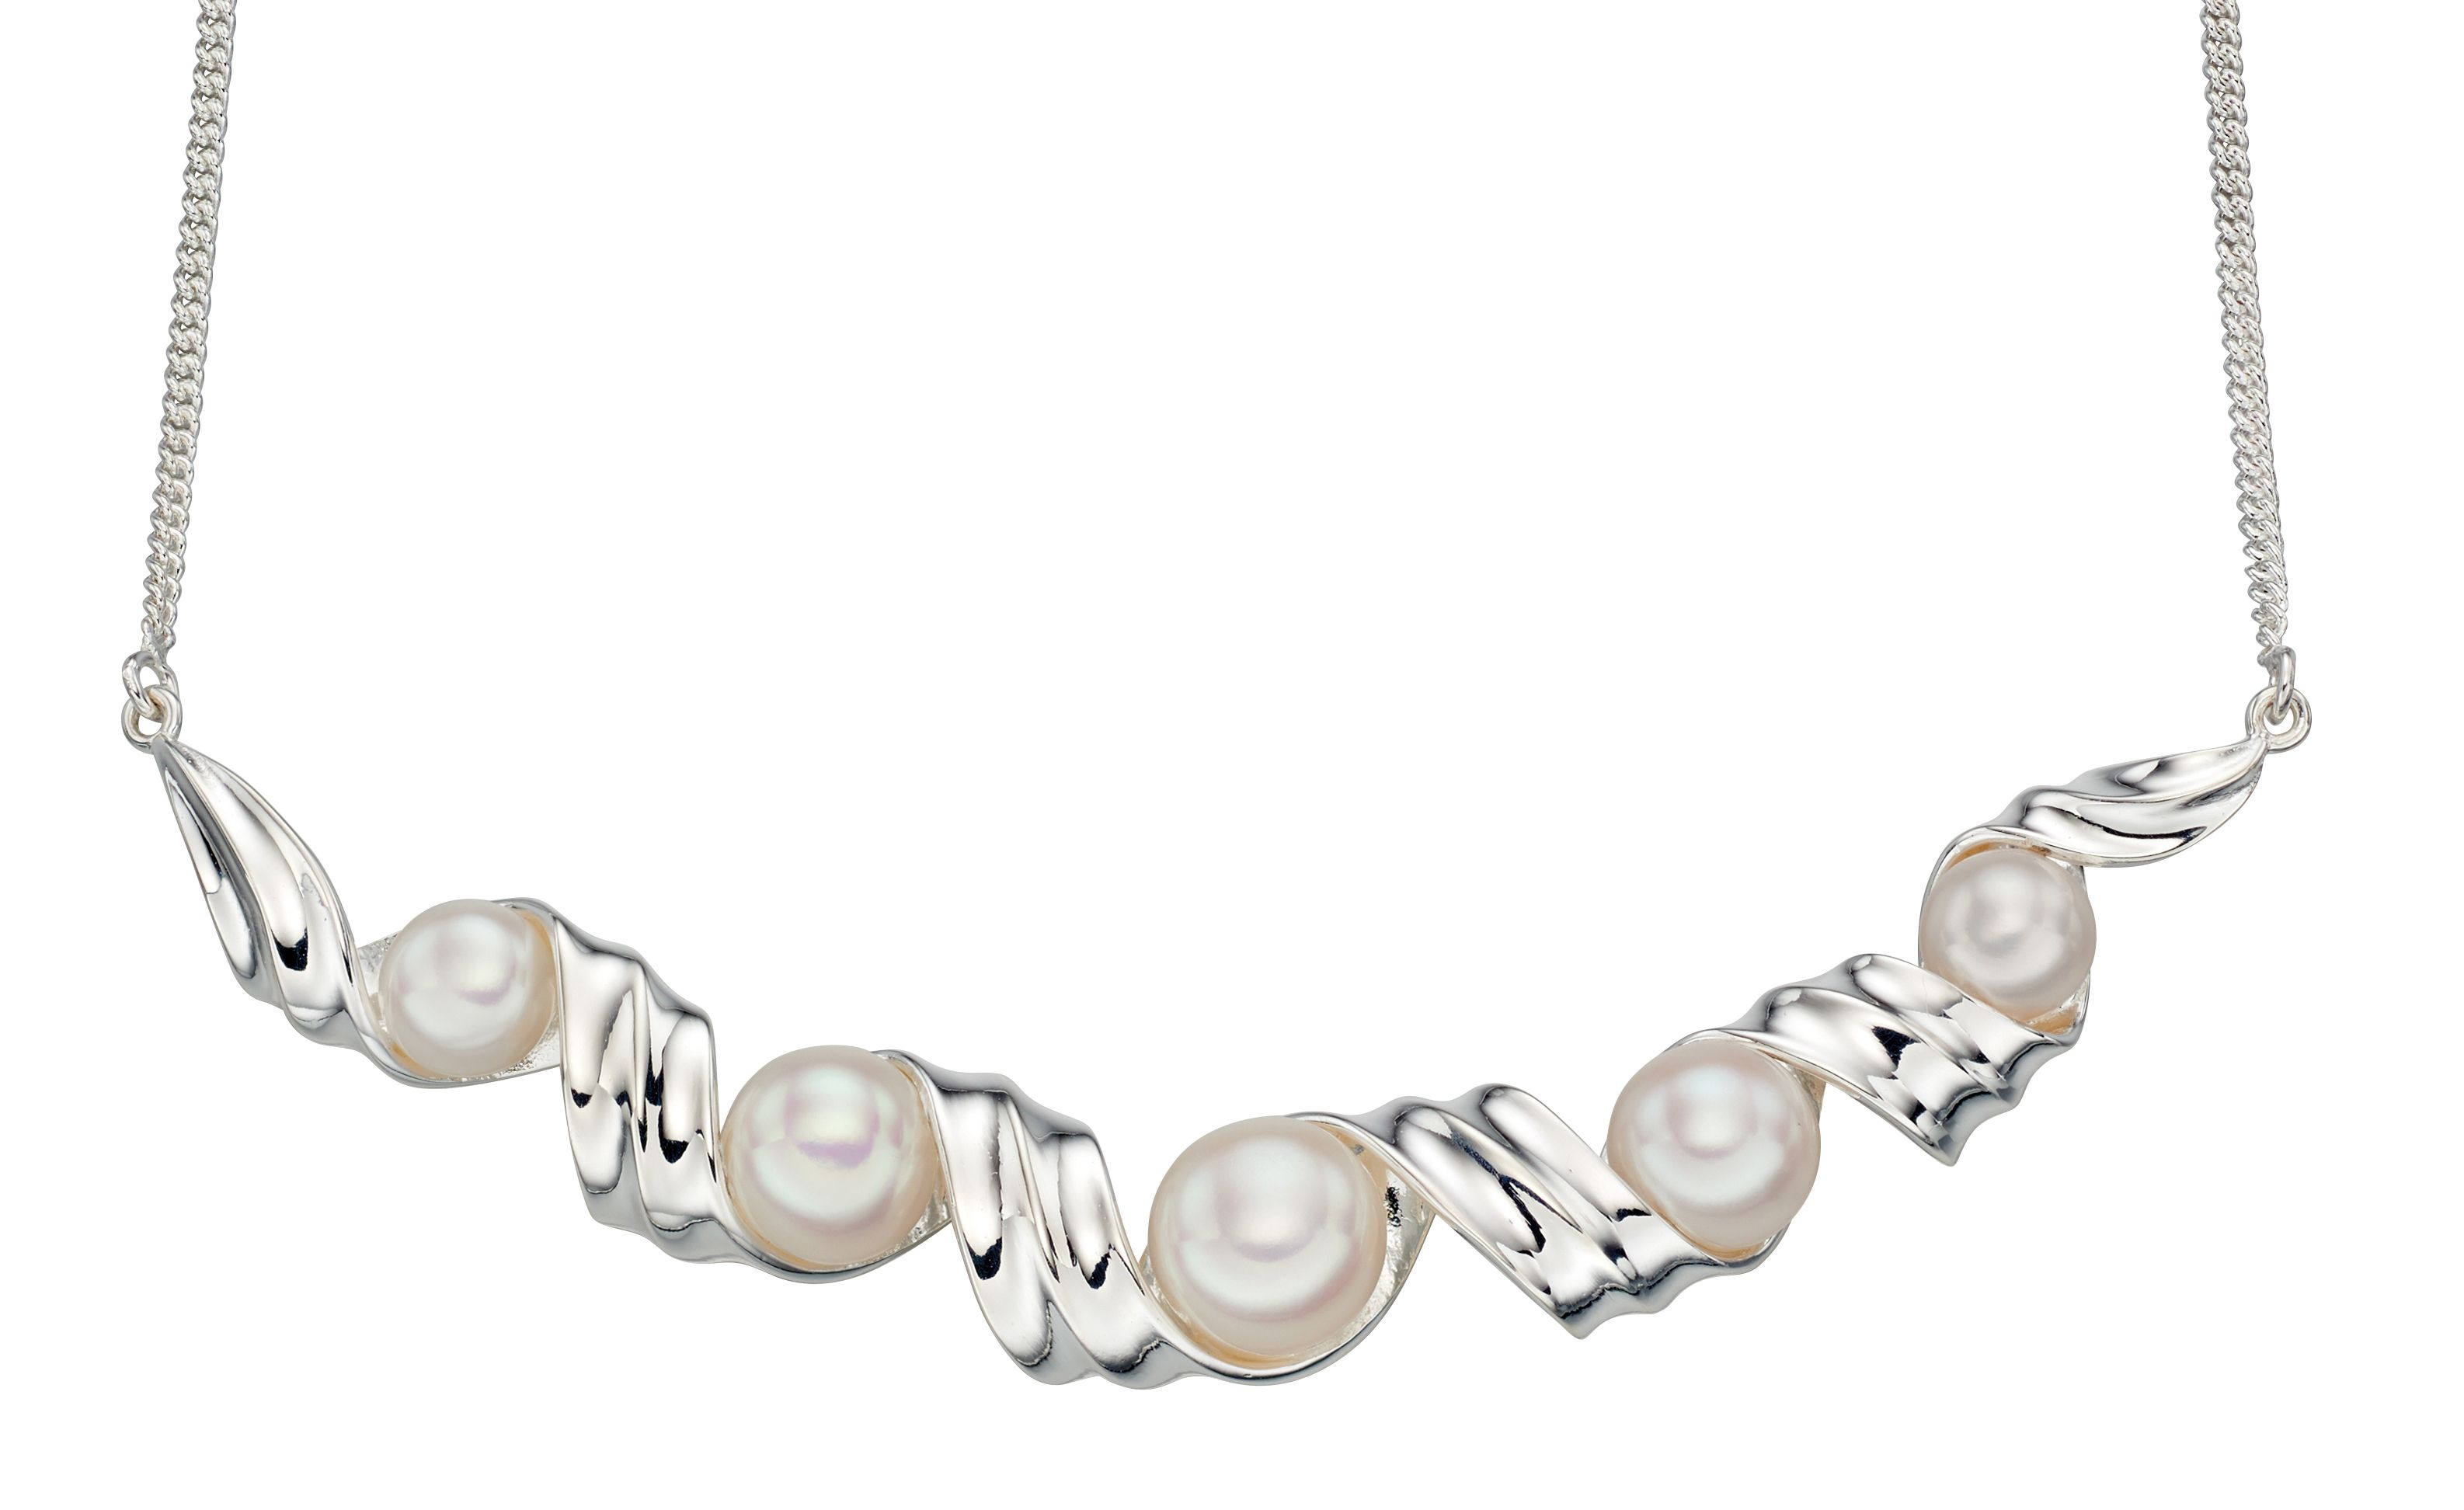 Elements Silver Womens 925 Sterling SIlver Freshwater Pearl Ribbon Twist Necklace of Length 46cm N4175W